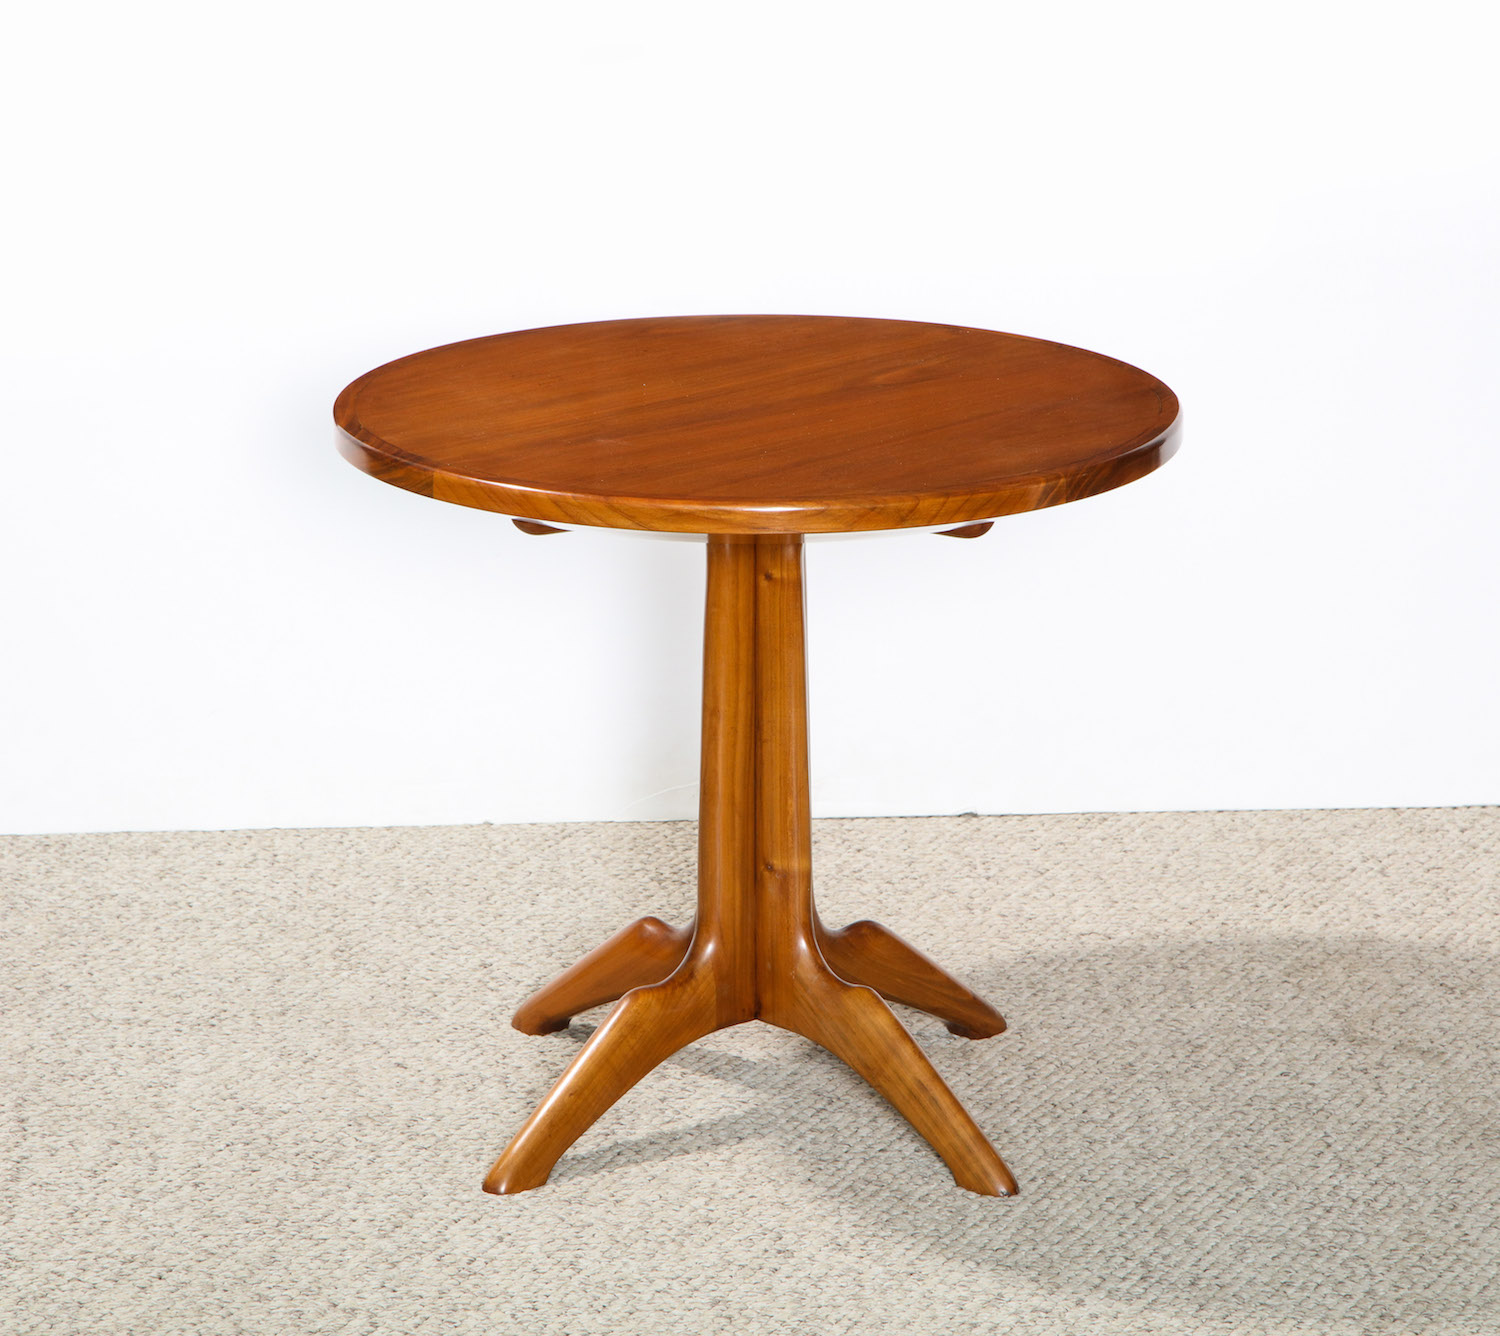 MTO Italian SIde Table 1.jpg